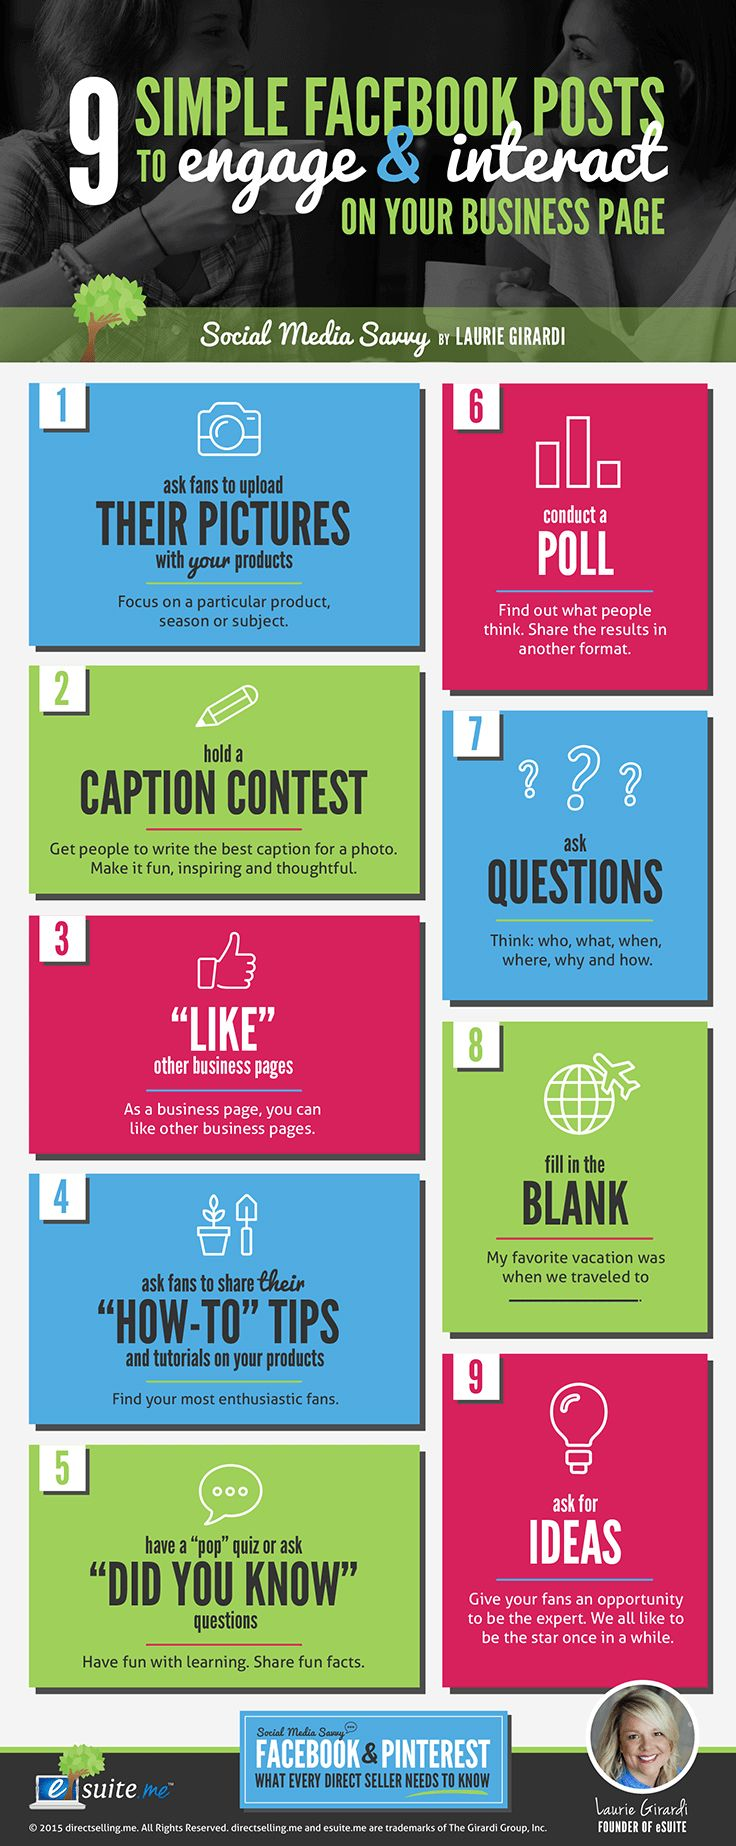 9 Simple Types of Facebook Post That Generate Interest & Engagement [Infographic]